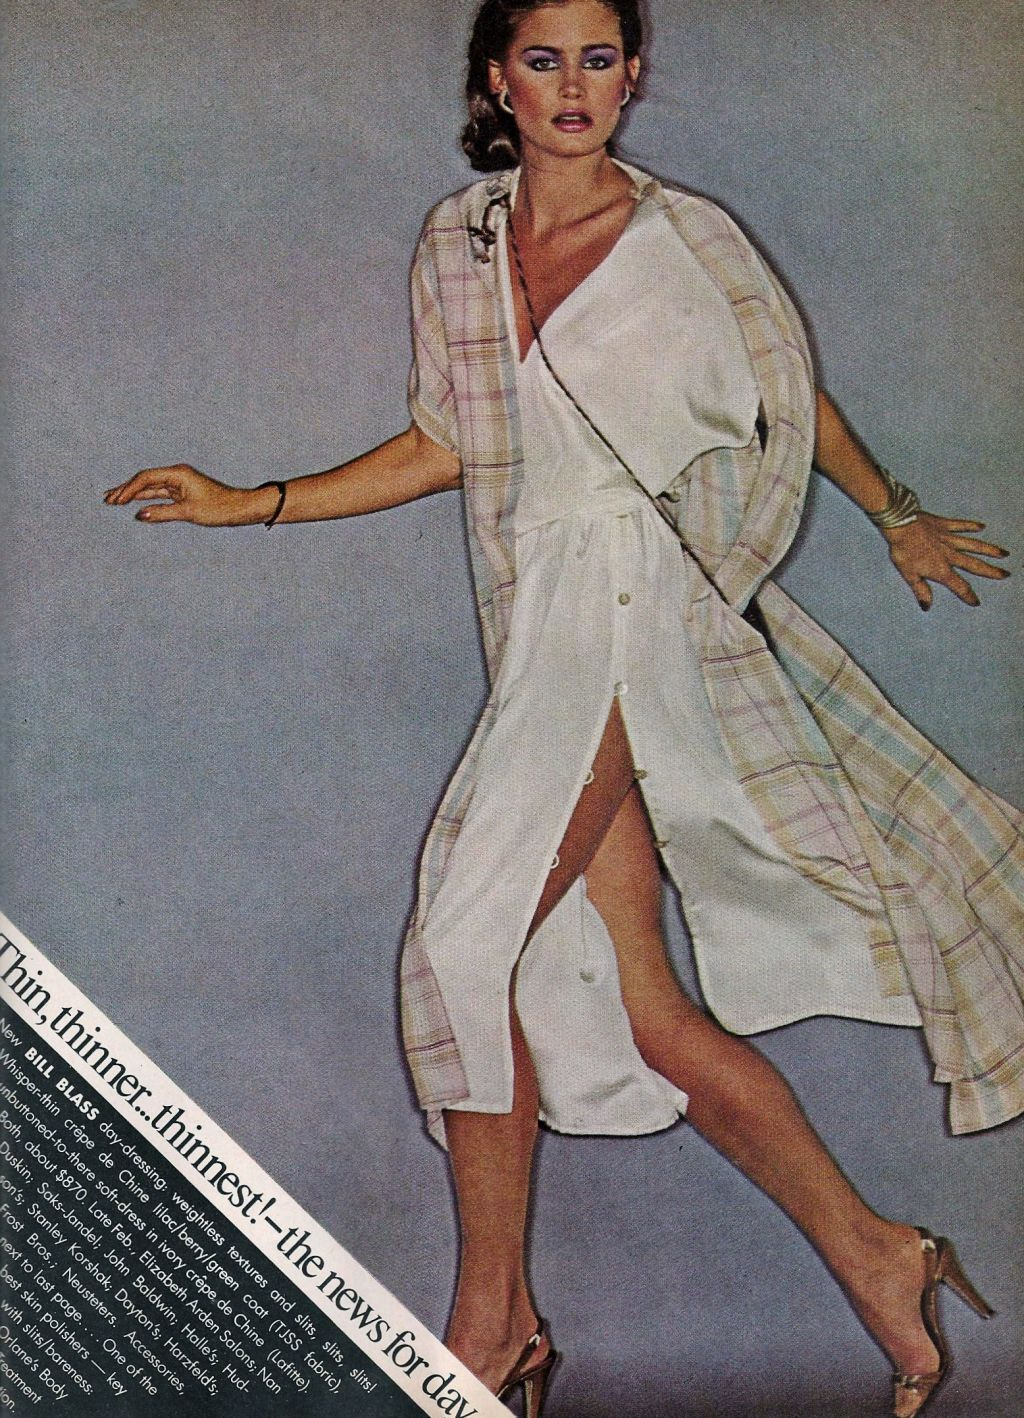 1970s style inspiration / how to style a shirt dress / vogue us february 1978 / via fashioned by love british fashion blog